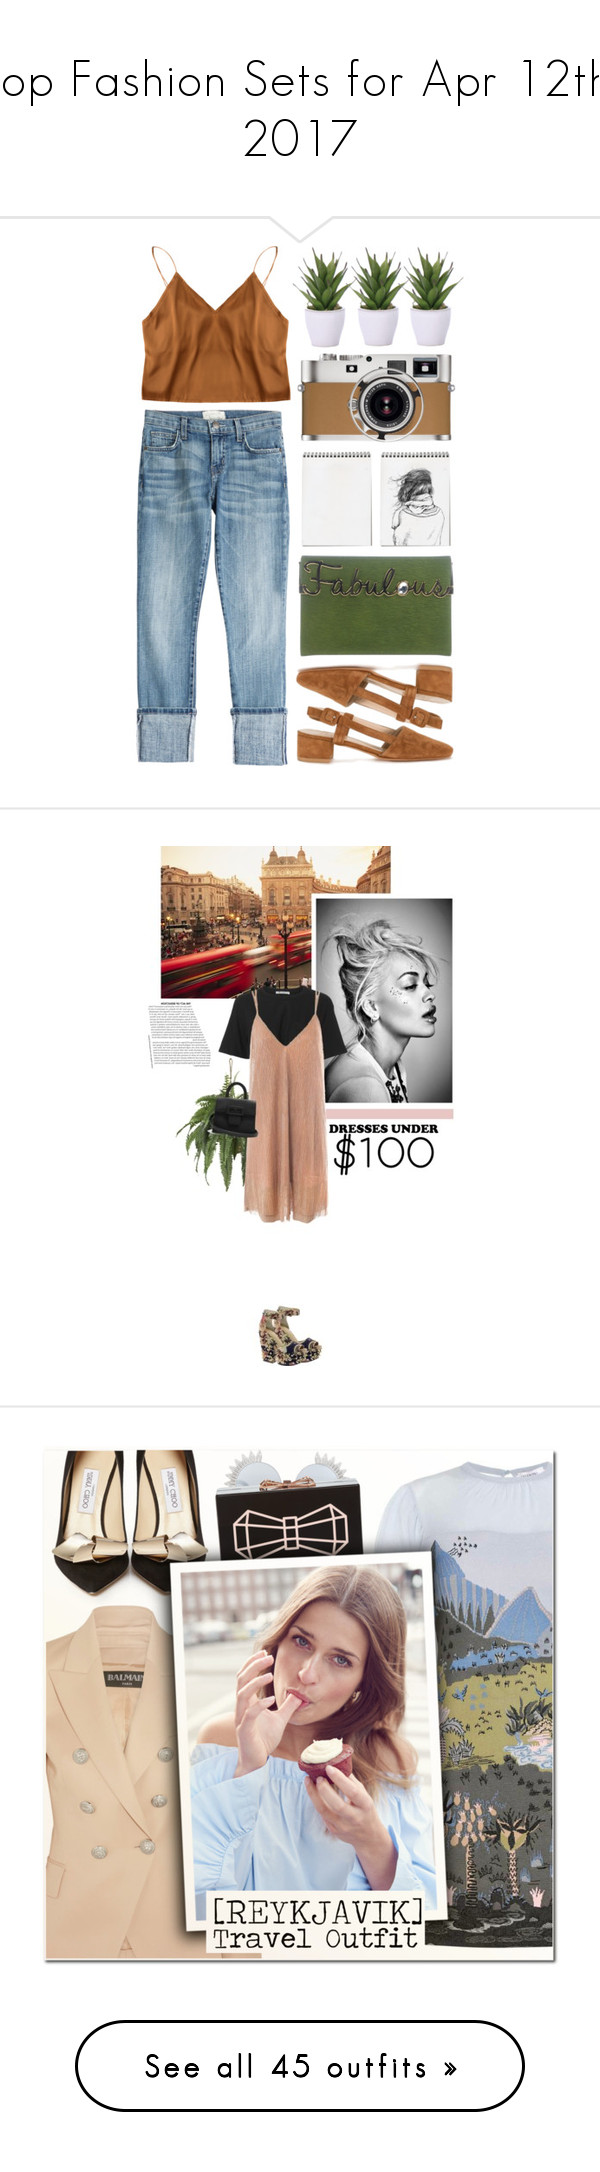 """""""Top Fashion Sets for Apr 12th, 2017"""" by polyvore ❤ liked on Polyvore featuring Lux-Art Silks, Current/Elliott, Maryam Nassir Zadeh, Charlotte Olympia, Hermès, Versus, ASOS, T By Alexander Wang, Sans Souci and Maison Margiela"""